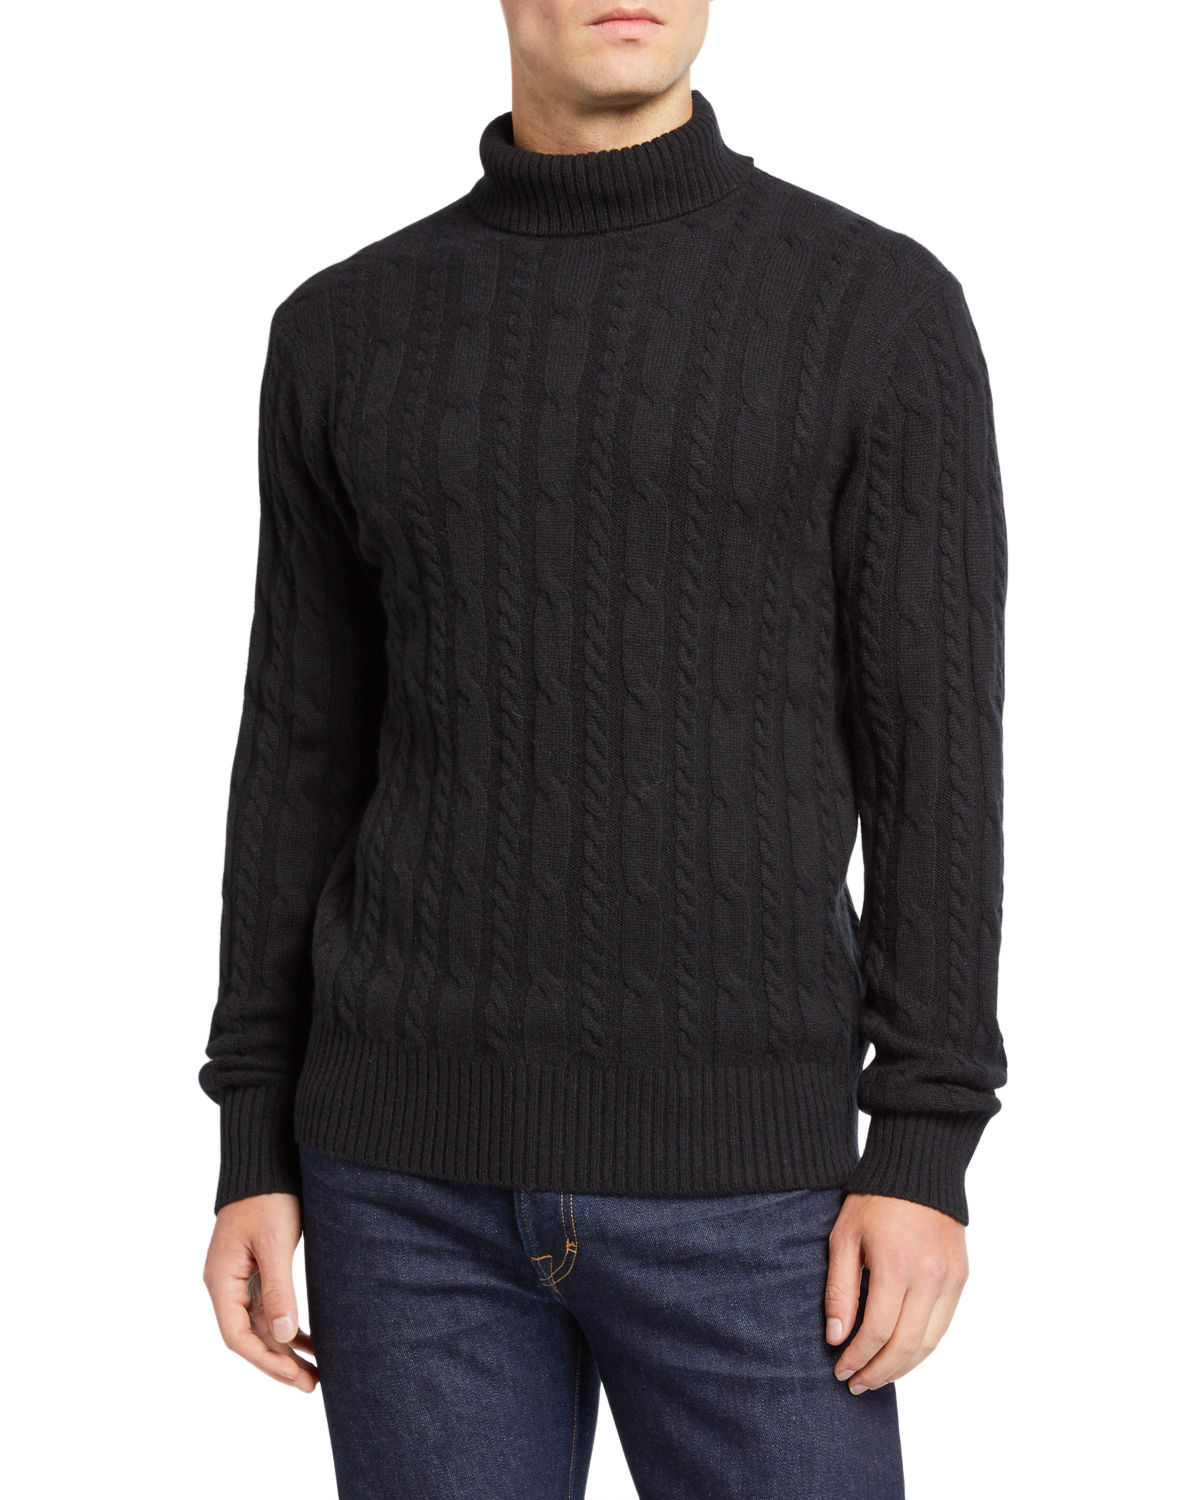 Neiman Marcus Knits MEN'S CABLE-KNIT TURTLENECK SWEATER